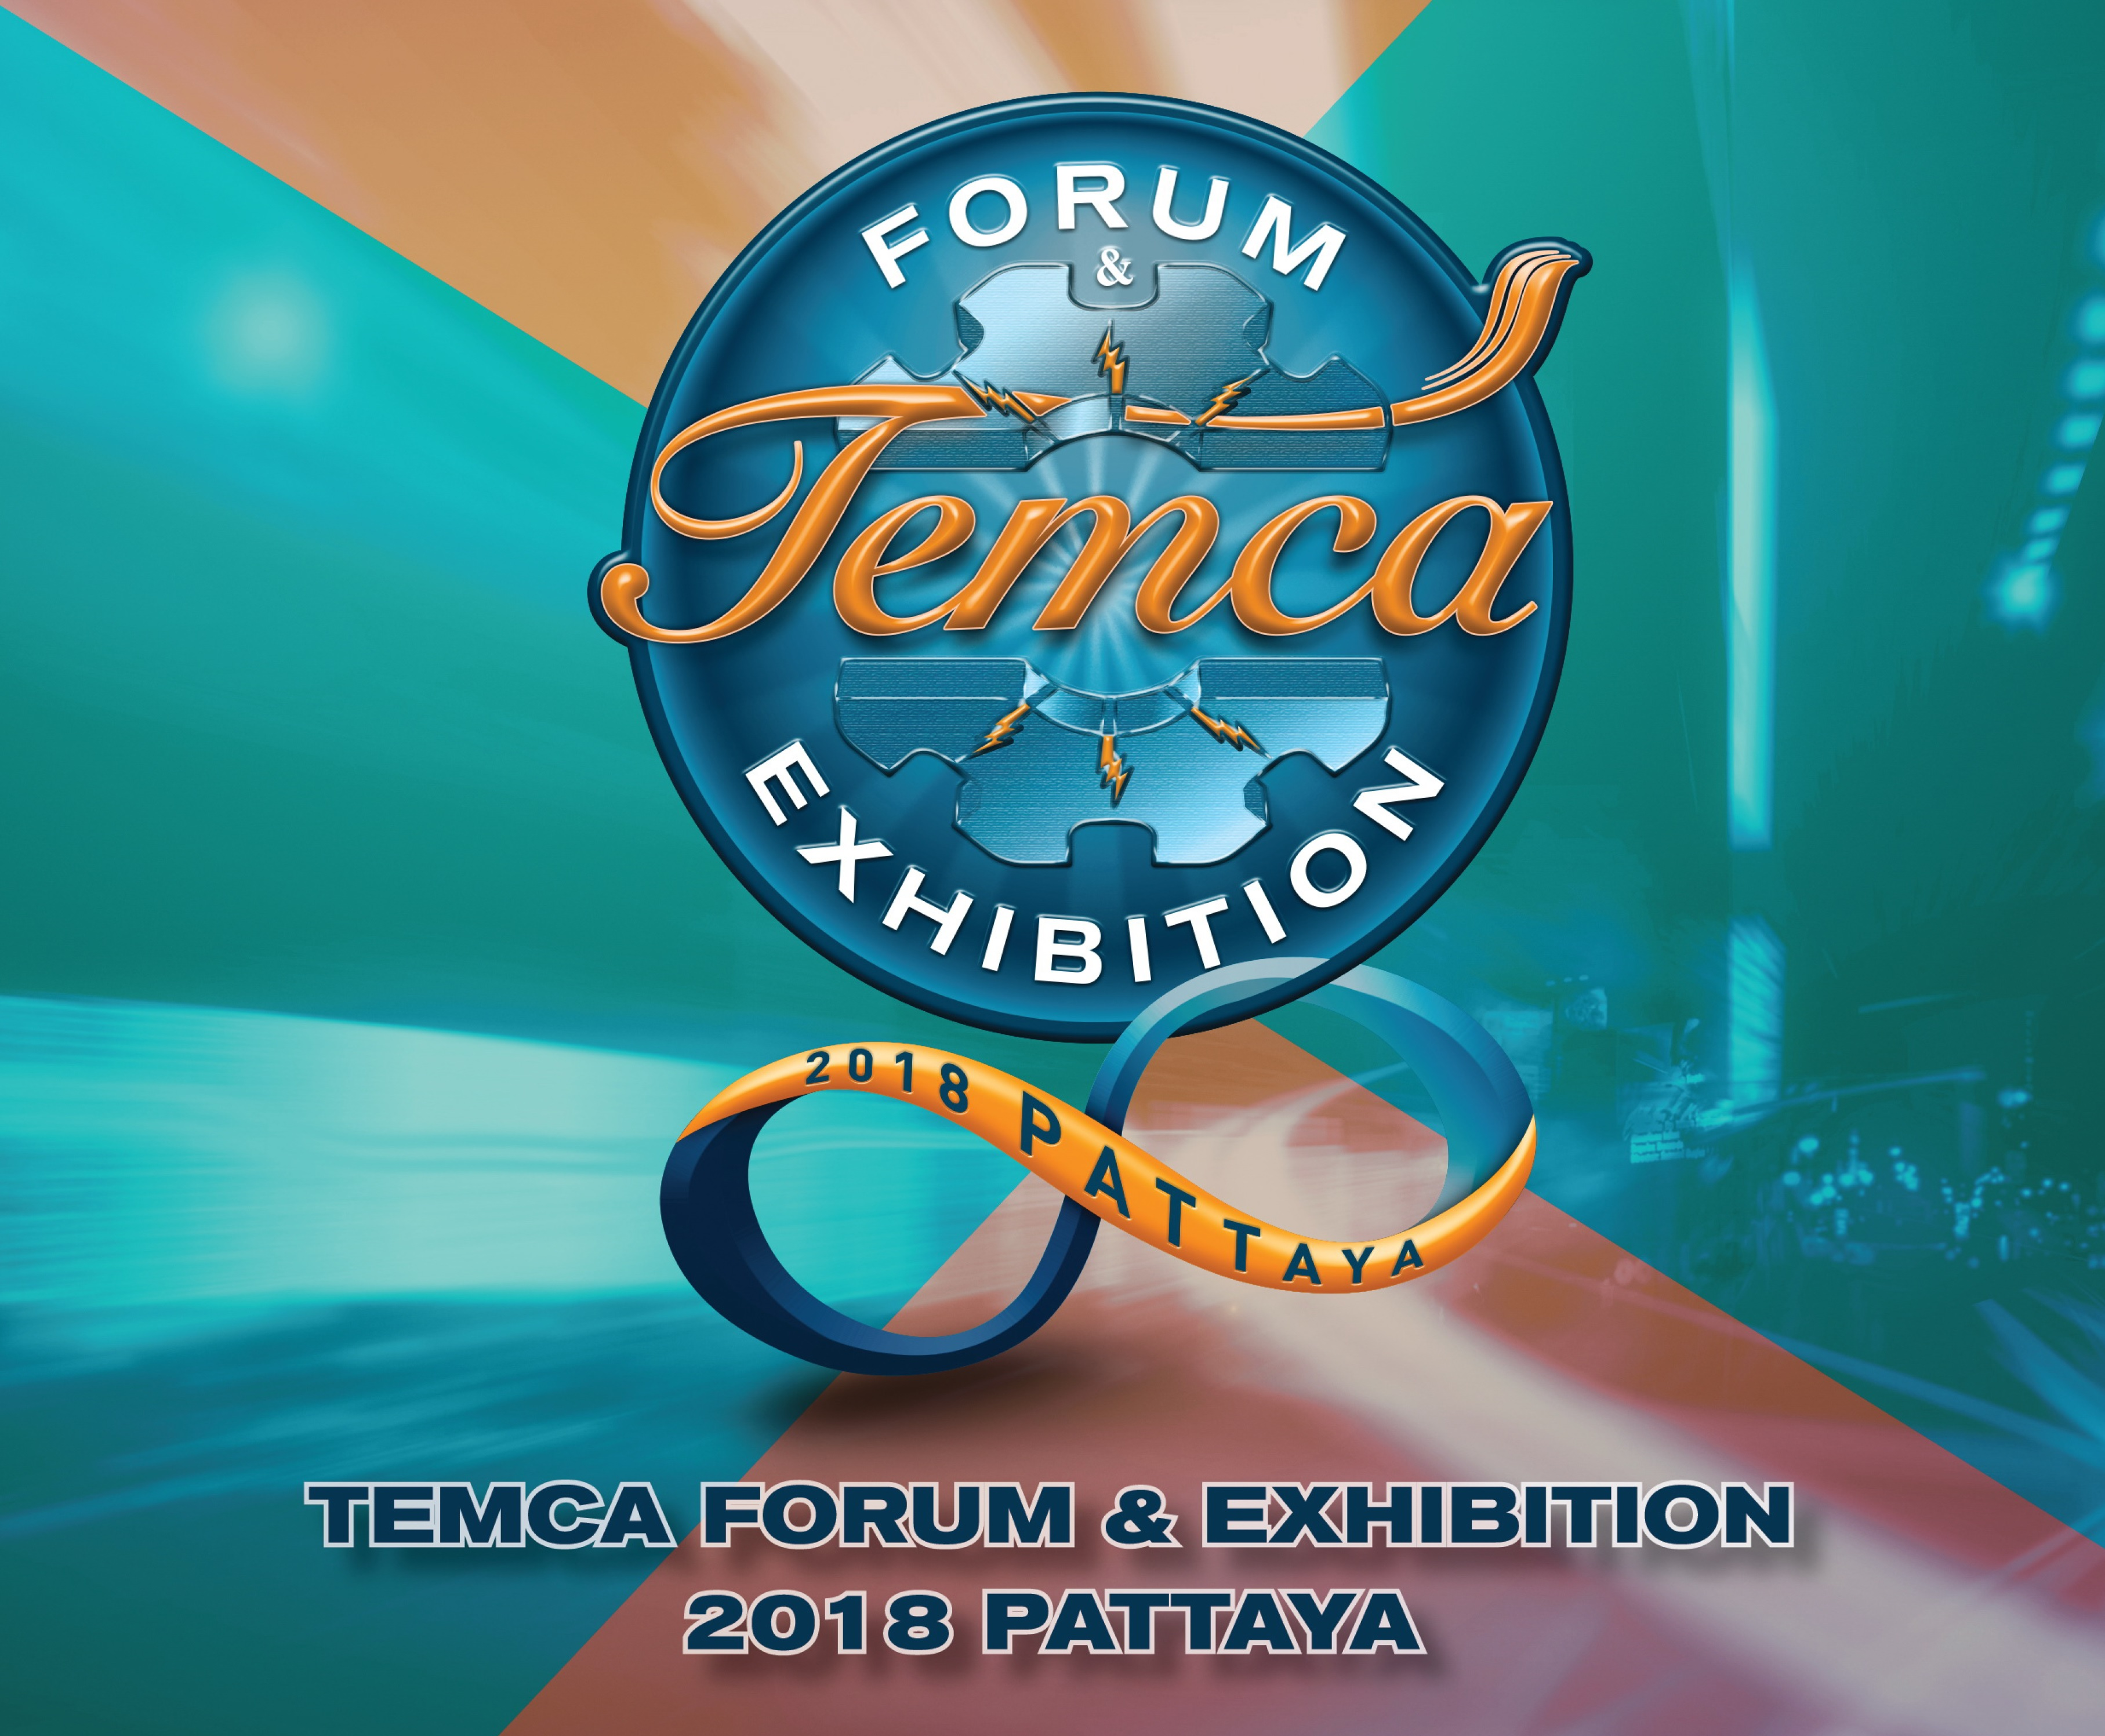 Ultraflux will join TEMCA exhibition at Royal Cliff Pattaya 17-18 August 2018